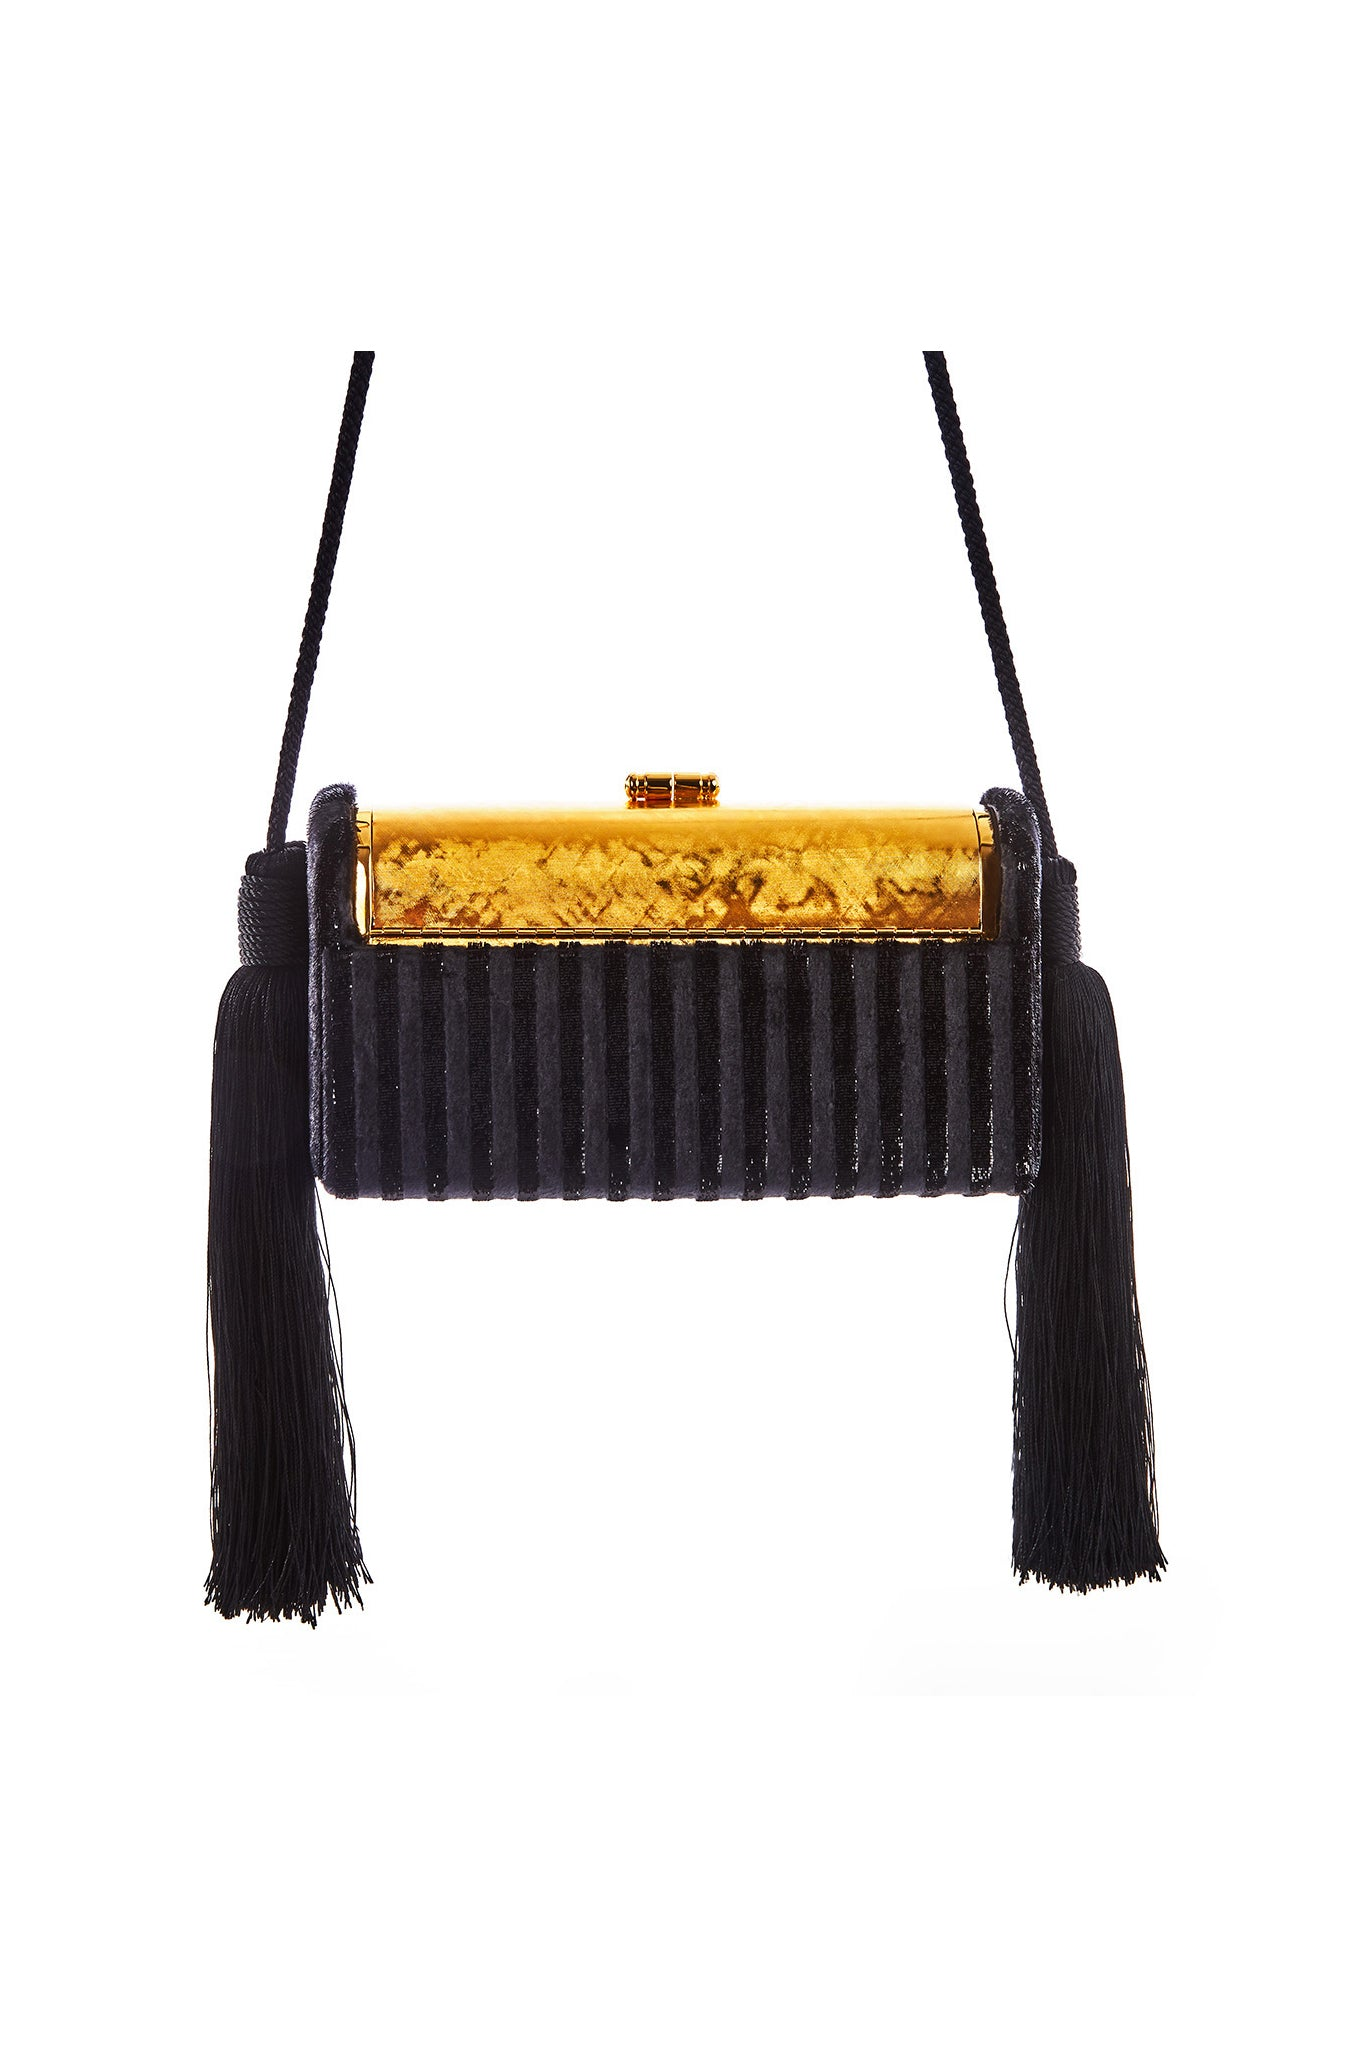 Gold Etched Régine Minaudière with Black Striped Velvet Lurex Chenille Tassel Case